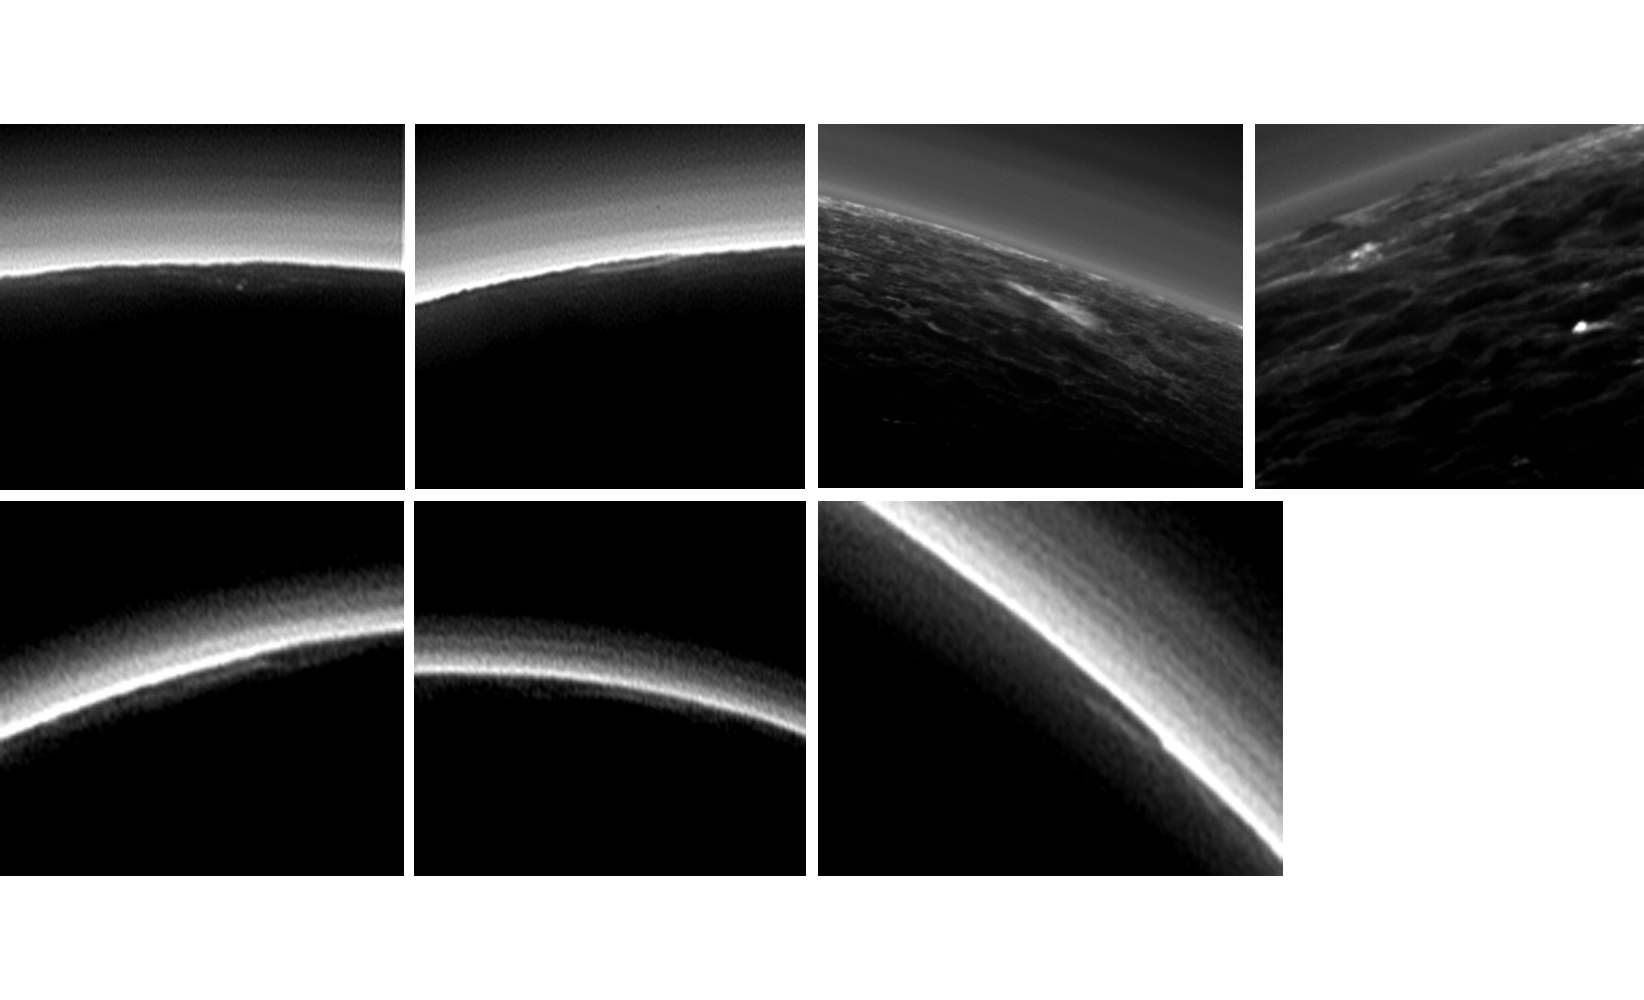 Pluto's present, hazy atmosphere is almost entirely free of clouds, though scientists from NASA's New Horizons mission have identified some cloud candidates after examining images taken by the New Horizons Long Range Reconnaissance Imager and Multispectral Visible Imaging Camera during the spacecraft's July 2015 flight through the Pluto system. All are low-lying, isolated small features -- no broad cloud decks or fields -- and while none of the features can be confirmed with stereo imaging, scientists say they are suggestive of possible, rare condensation clouds. Credit: NASA/JHUAPL/SWRI